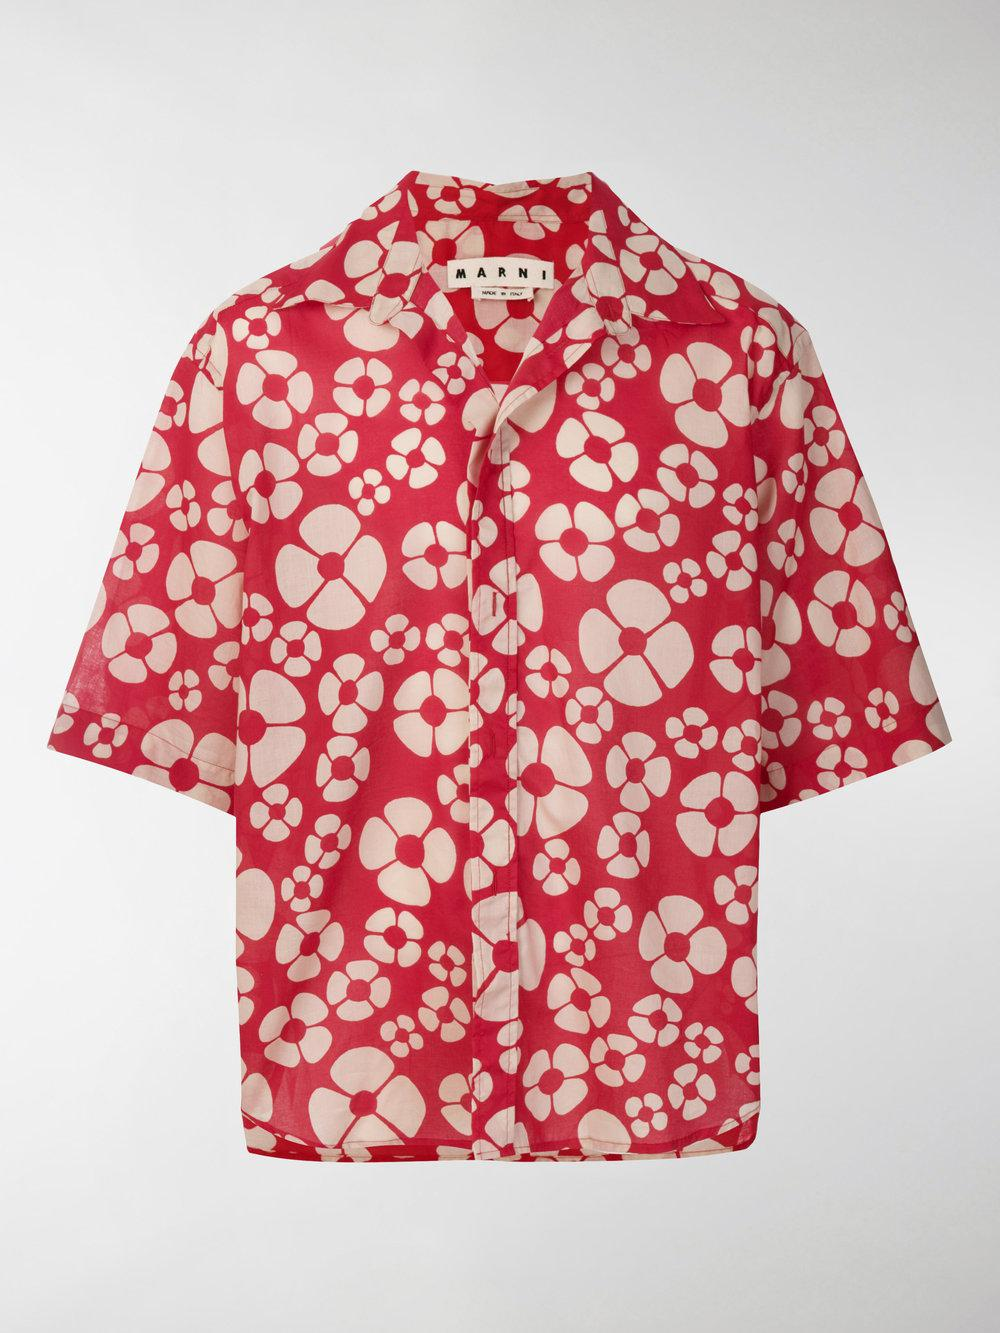 Woodstock print shirt - Red Marni Low Shipping Fee For Sale Explore Online Buy Cheap Best Store To Get Outlet Collections Low Price Fee Shipping EzV5SpjZNK